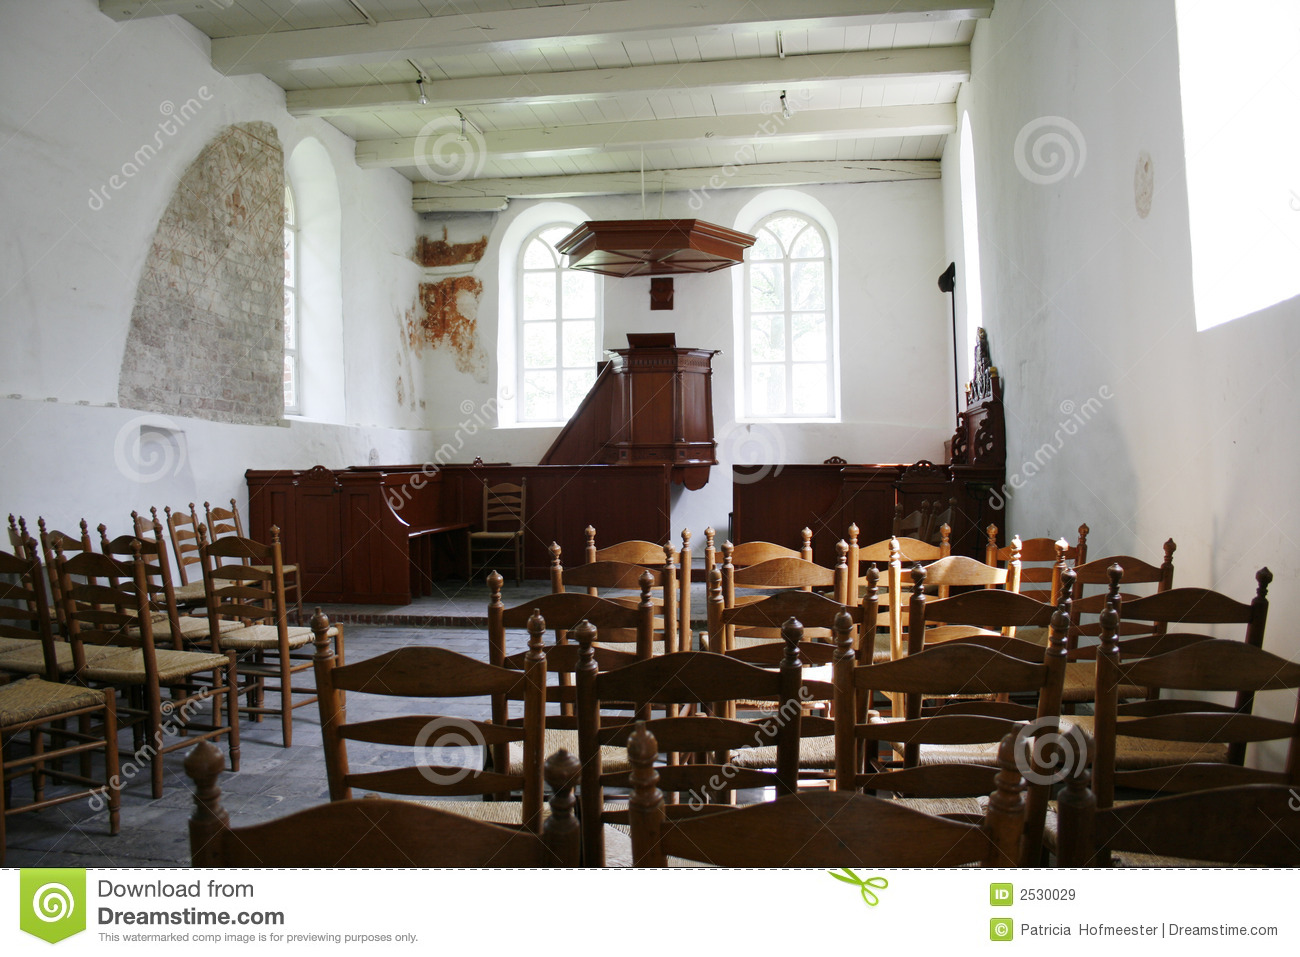 chairs 4 less accent office interior of medieval church stock image - christian, holy: 2530029